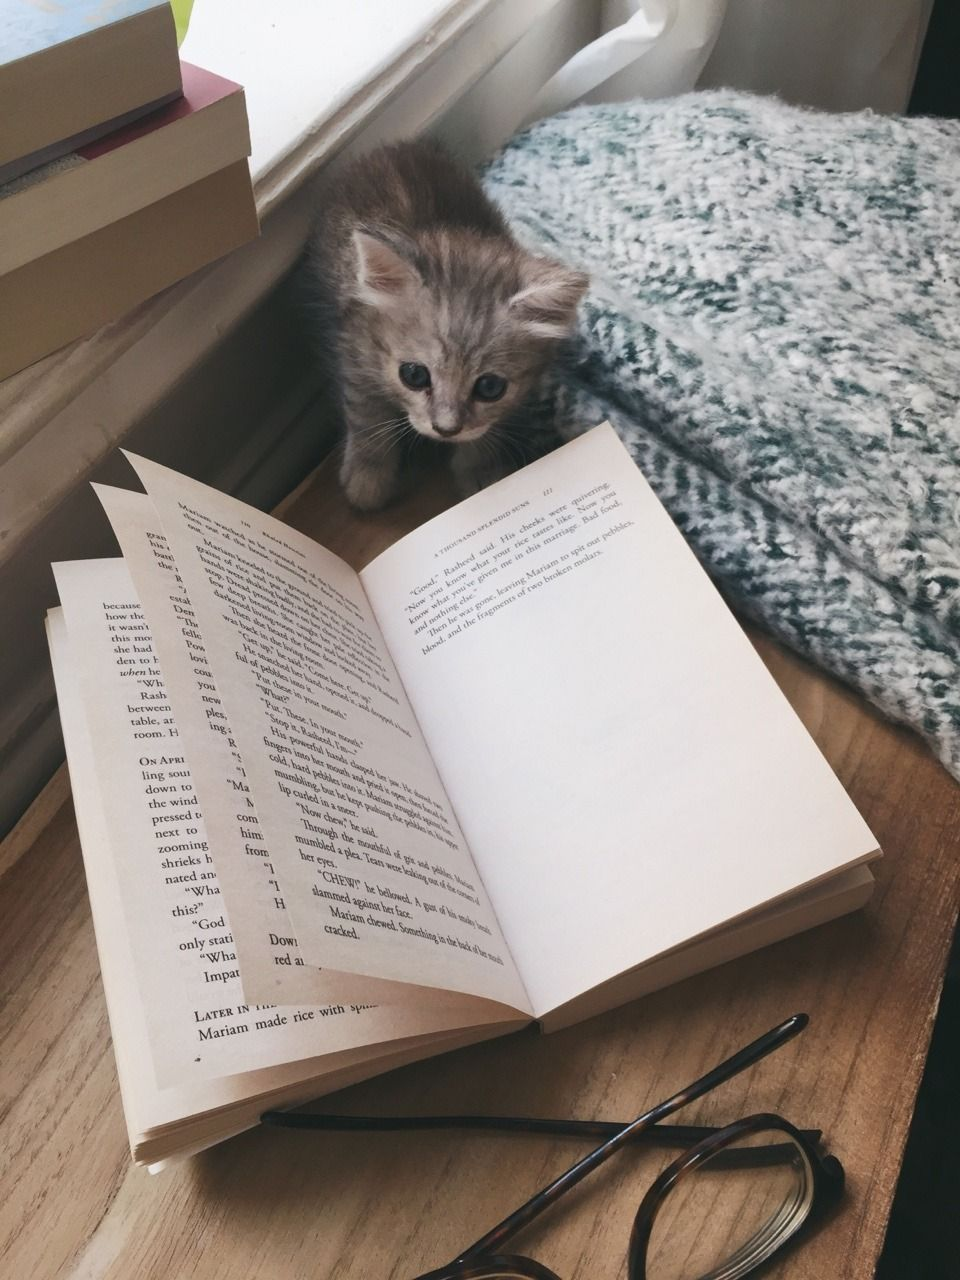 Books Coffee Tea Kitty And Me Oh And Wine Cat Quotes Books Cat Books